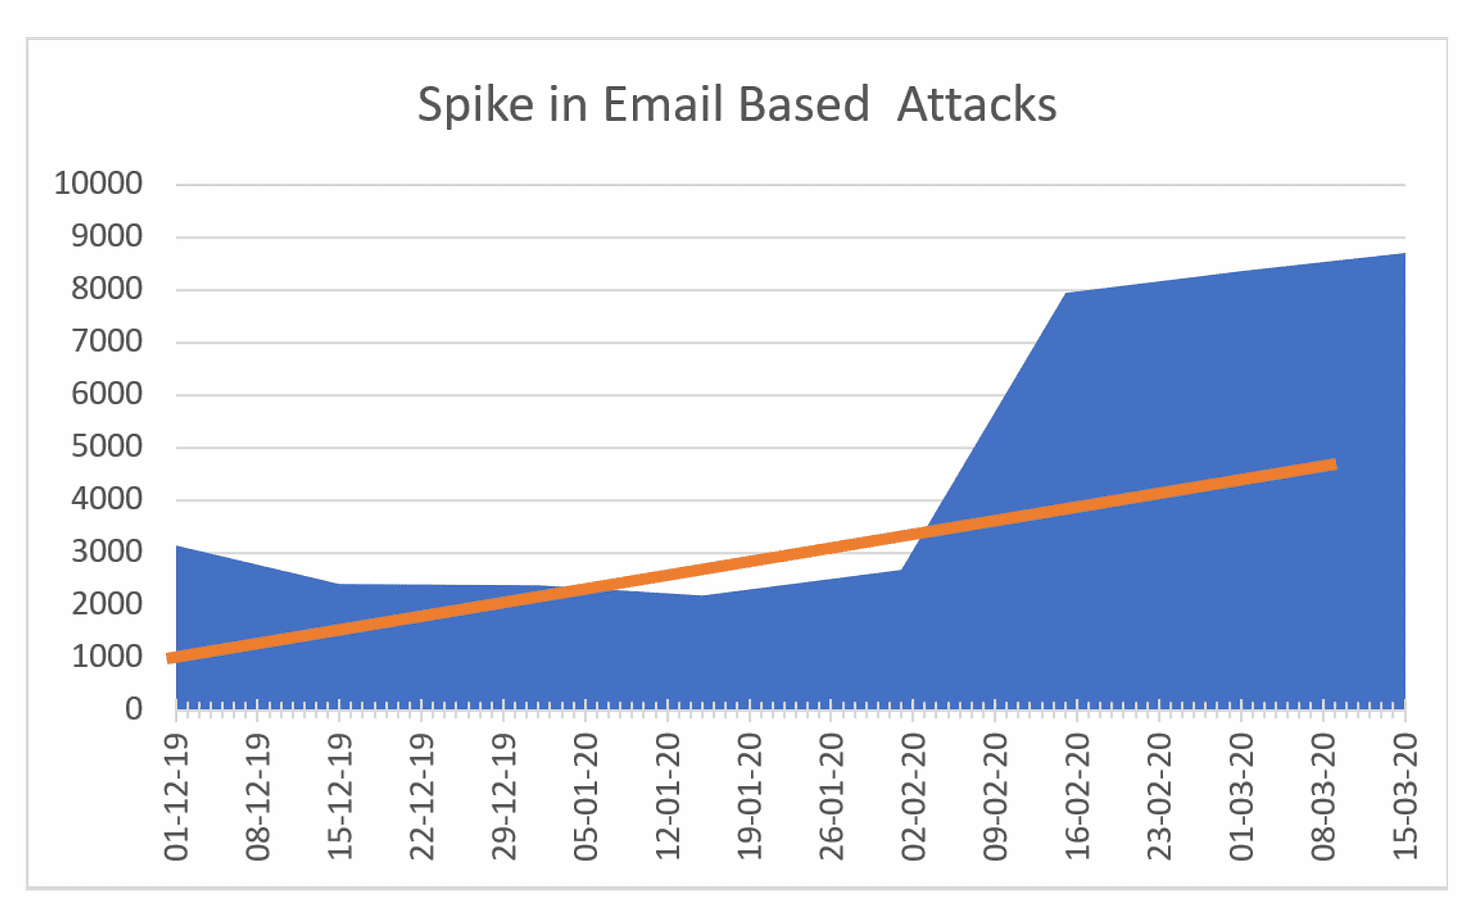 Chart showing spike in email based attacks.